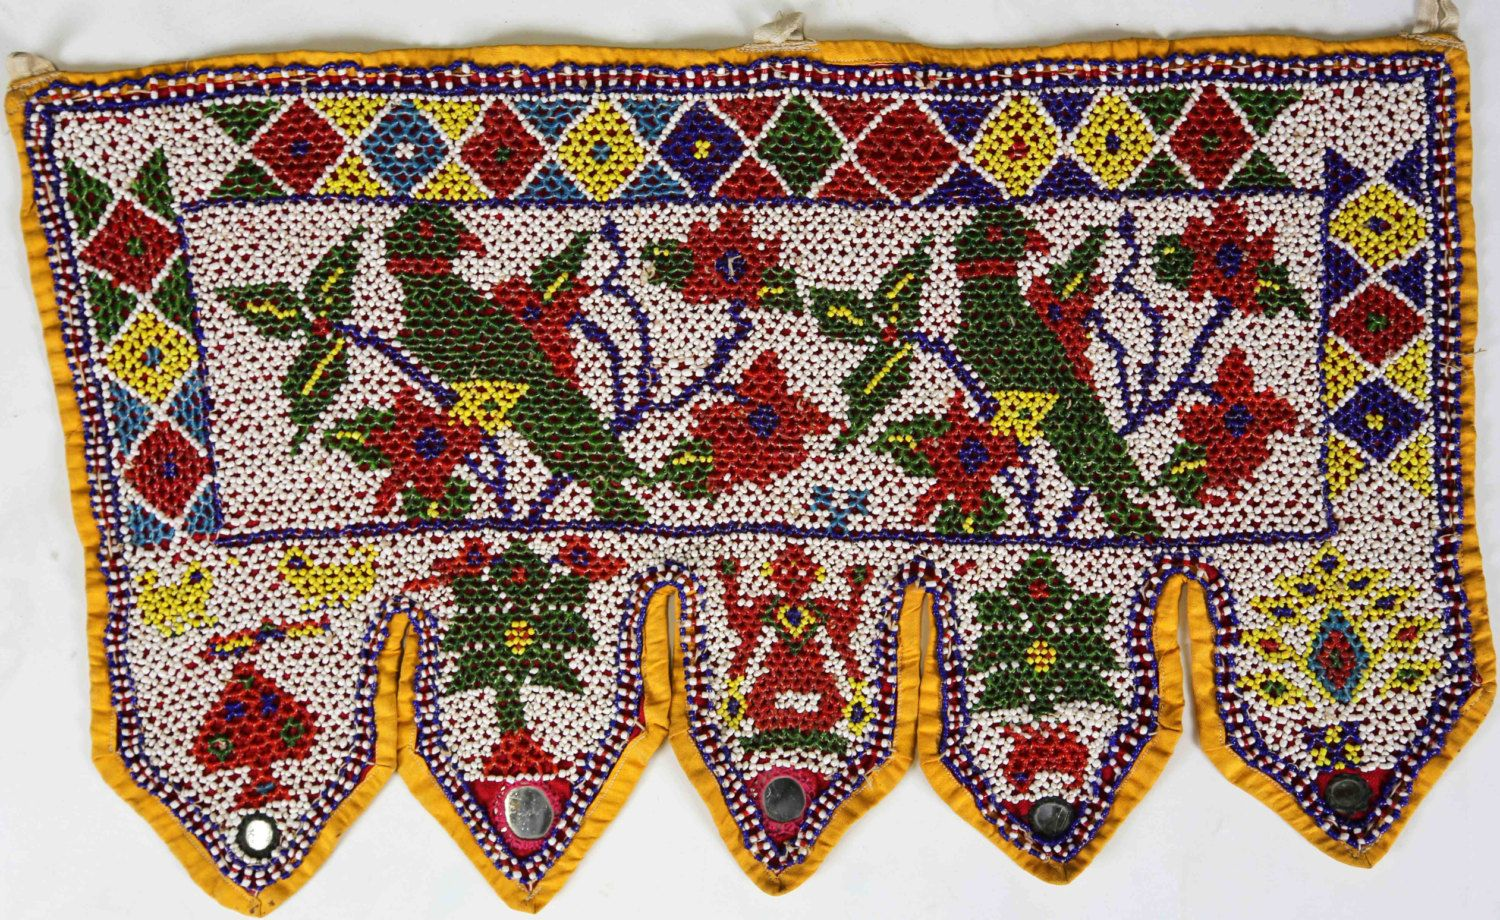 Rabari Toran Wall Hanging Colorful Beaded Tribal Valence Antique Kutch by  Wanderloot on Etsy